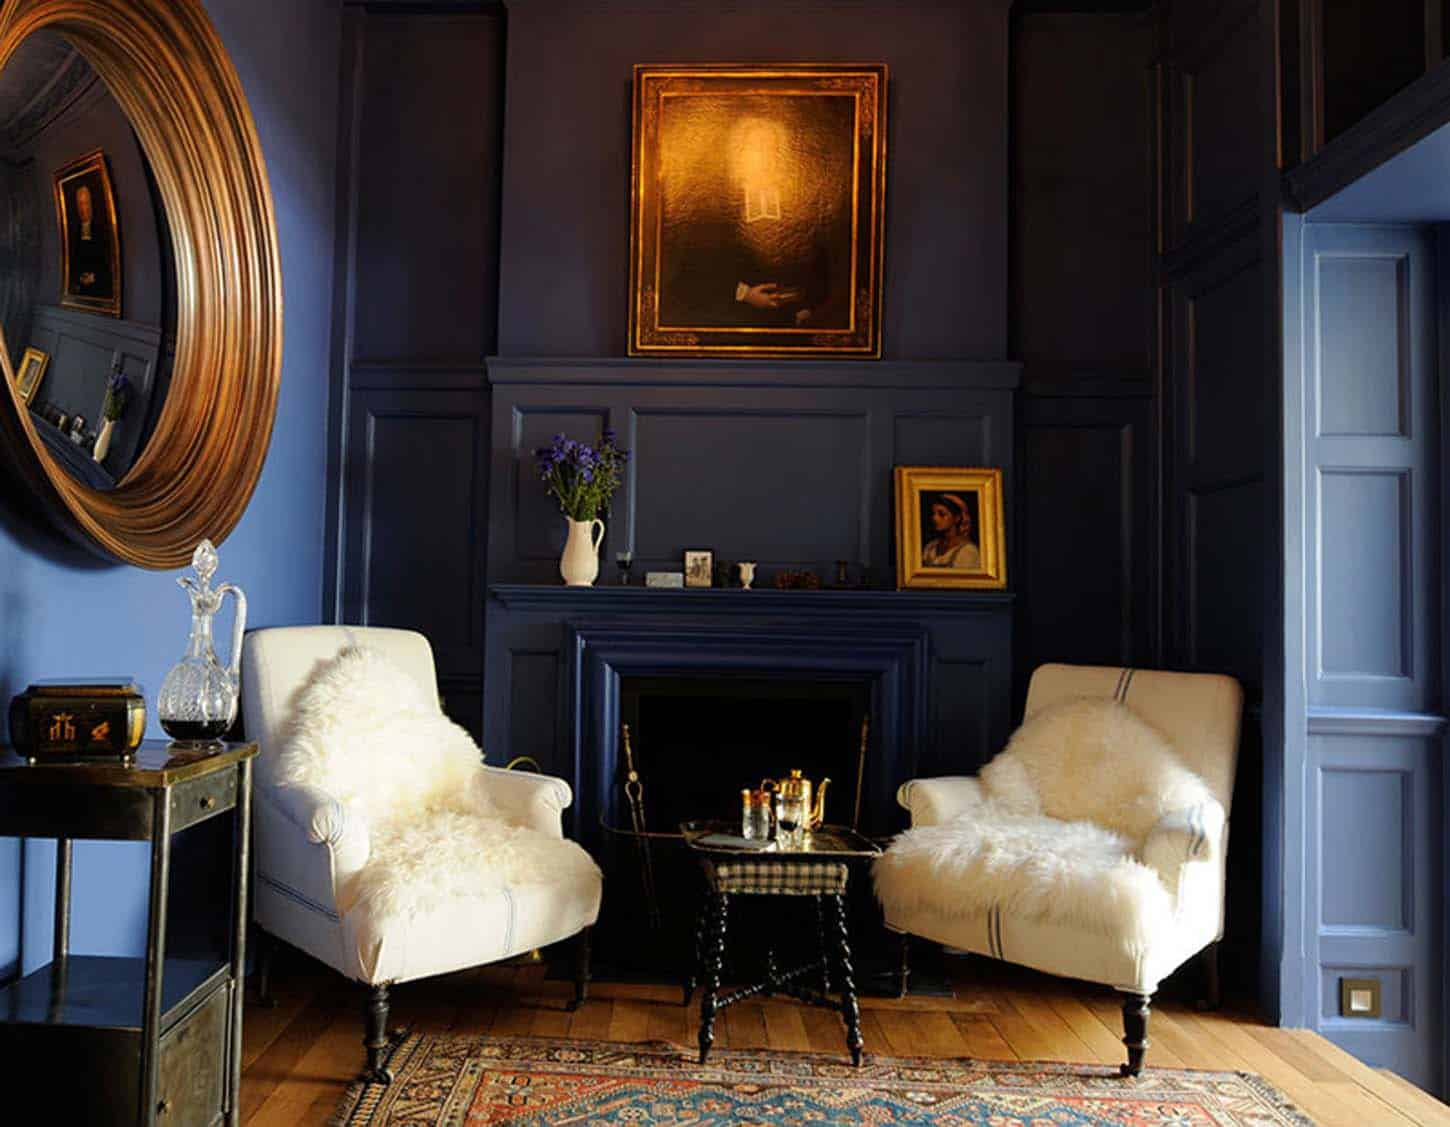 Moody Blue and Gold Interiors